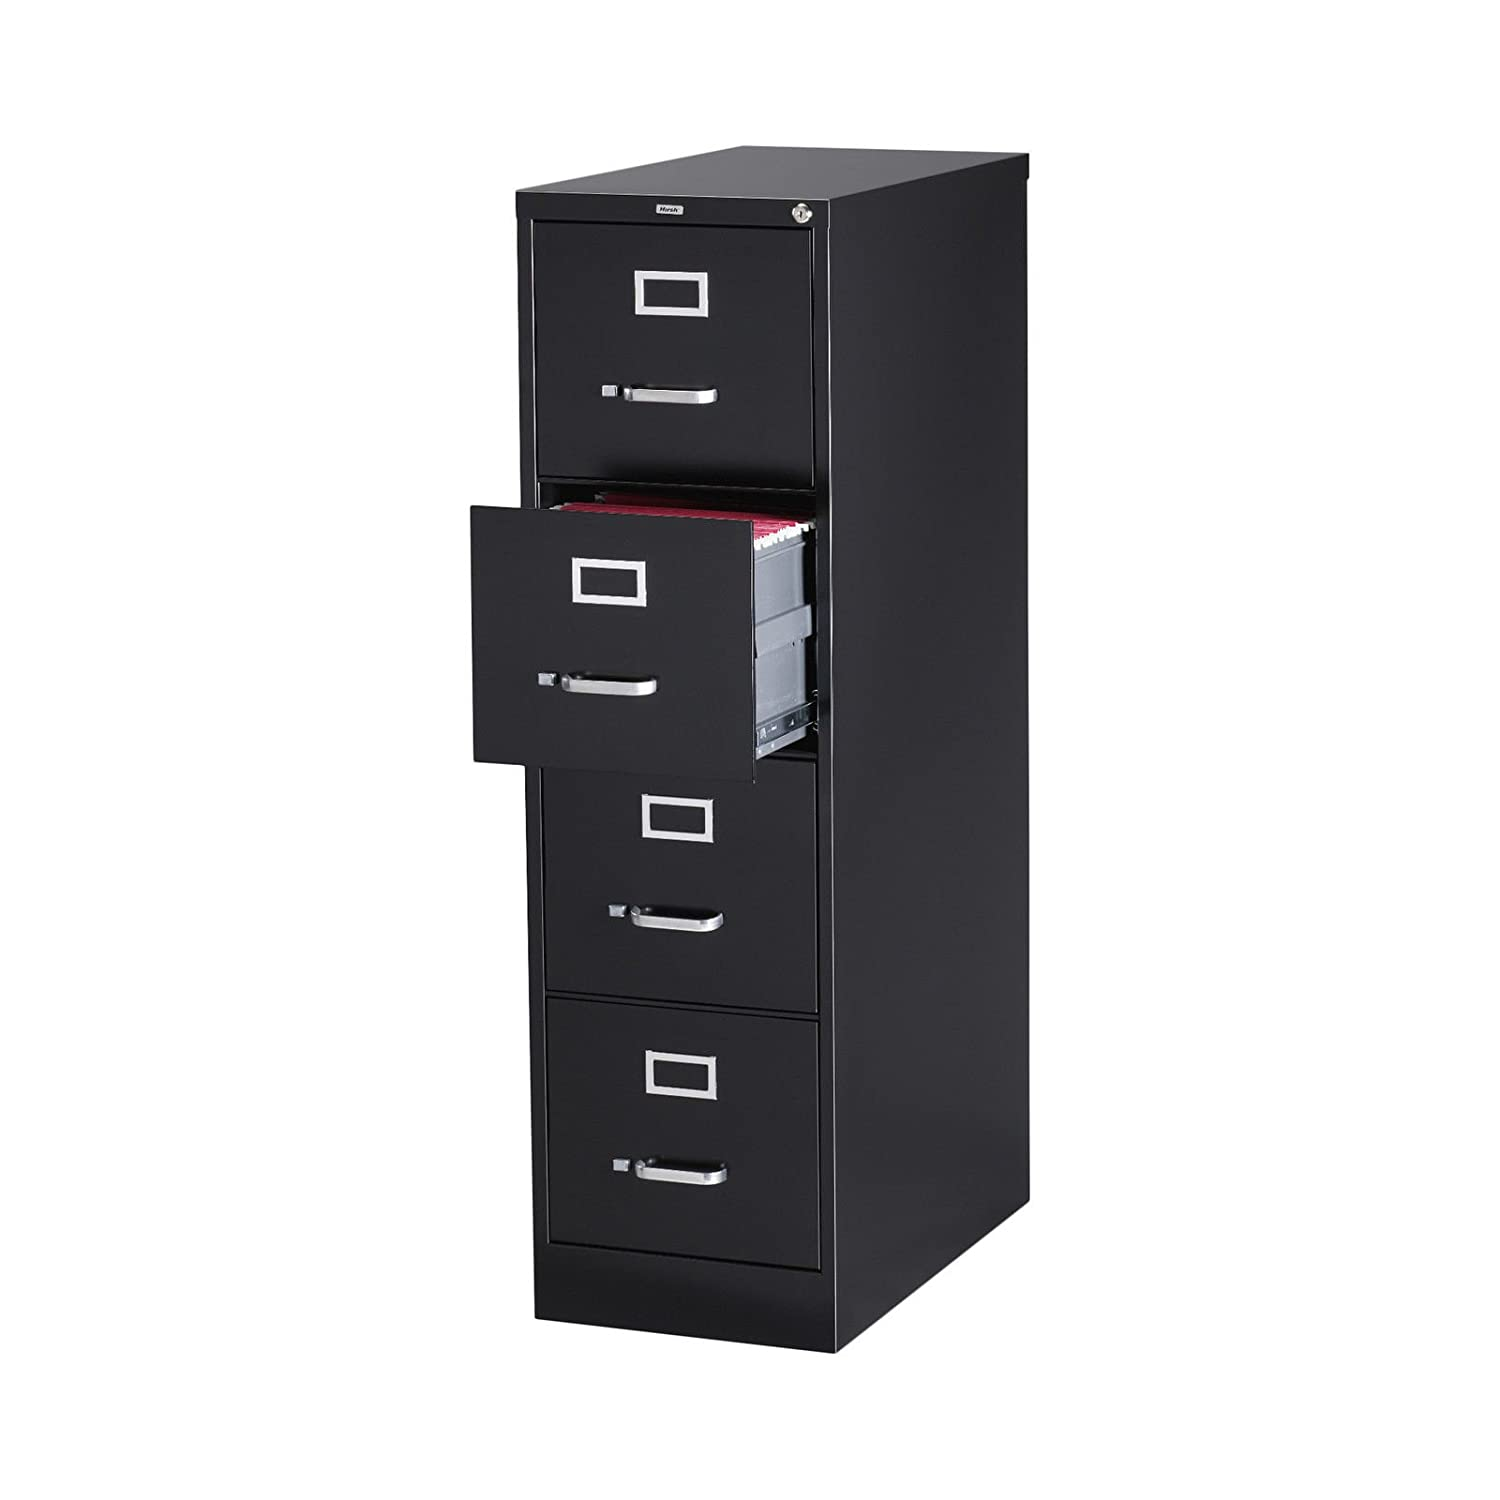 Amazon.com : 4 Drawer Letter Size Commercial File Finish: Black ...